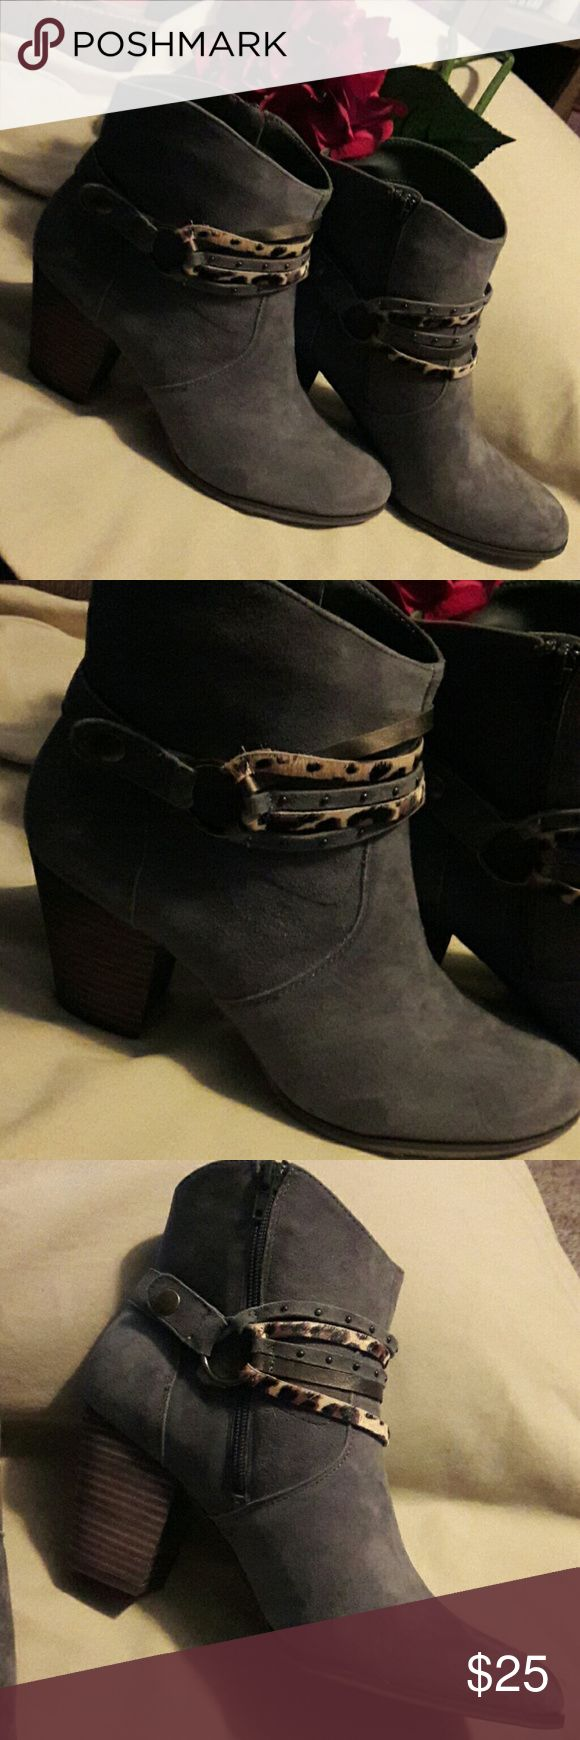 NEW! LEATHER BELLA VITA BOOTS New. Dark Gray fashion boot. Removable boot cuff for 2 different looks. Side zipper faces inside. Bella Vita Shoes Ankle Boots & Booties